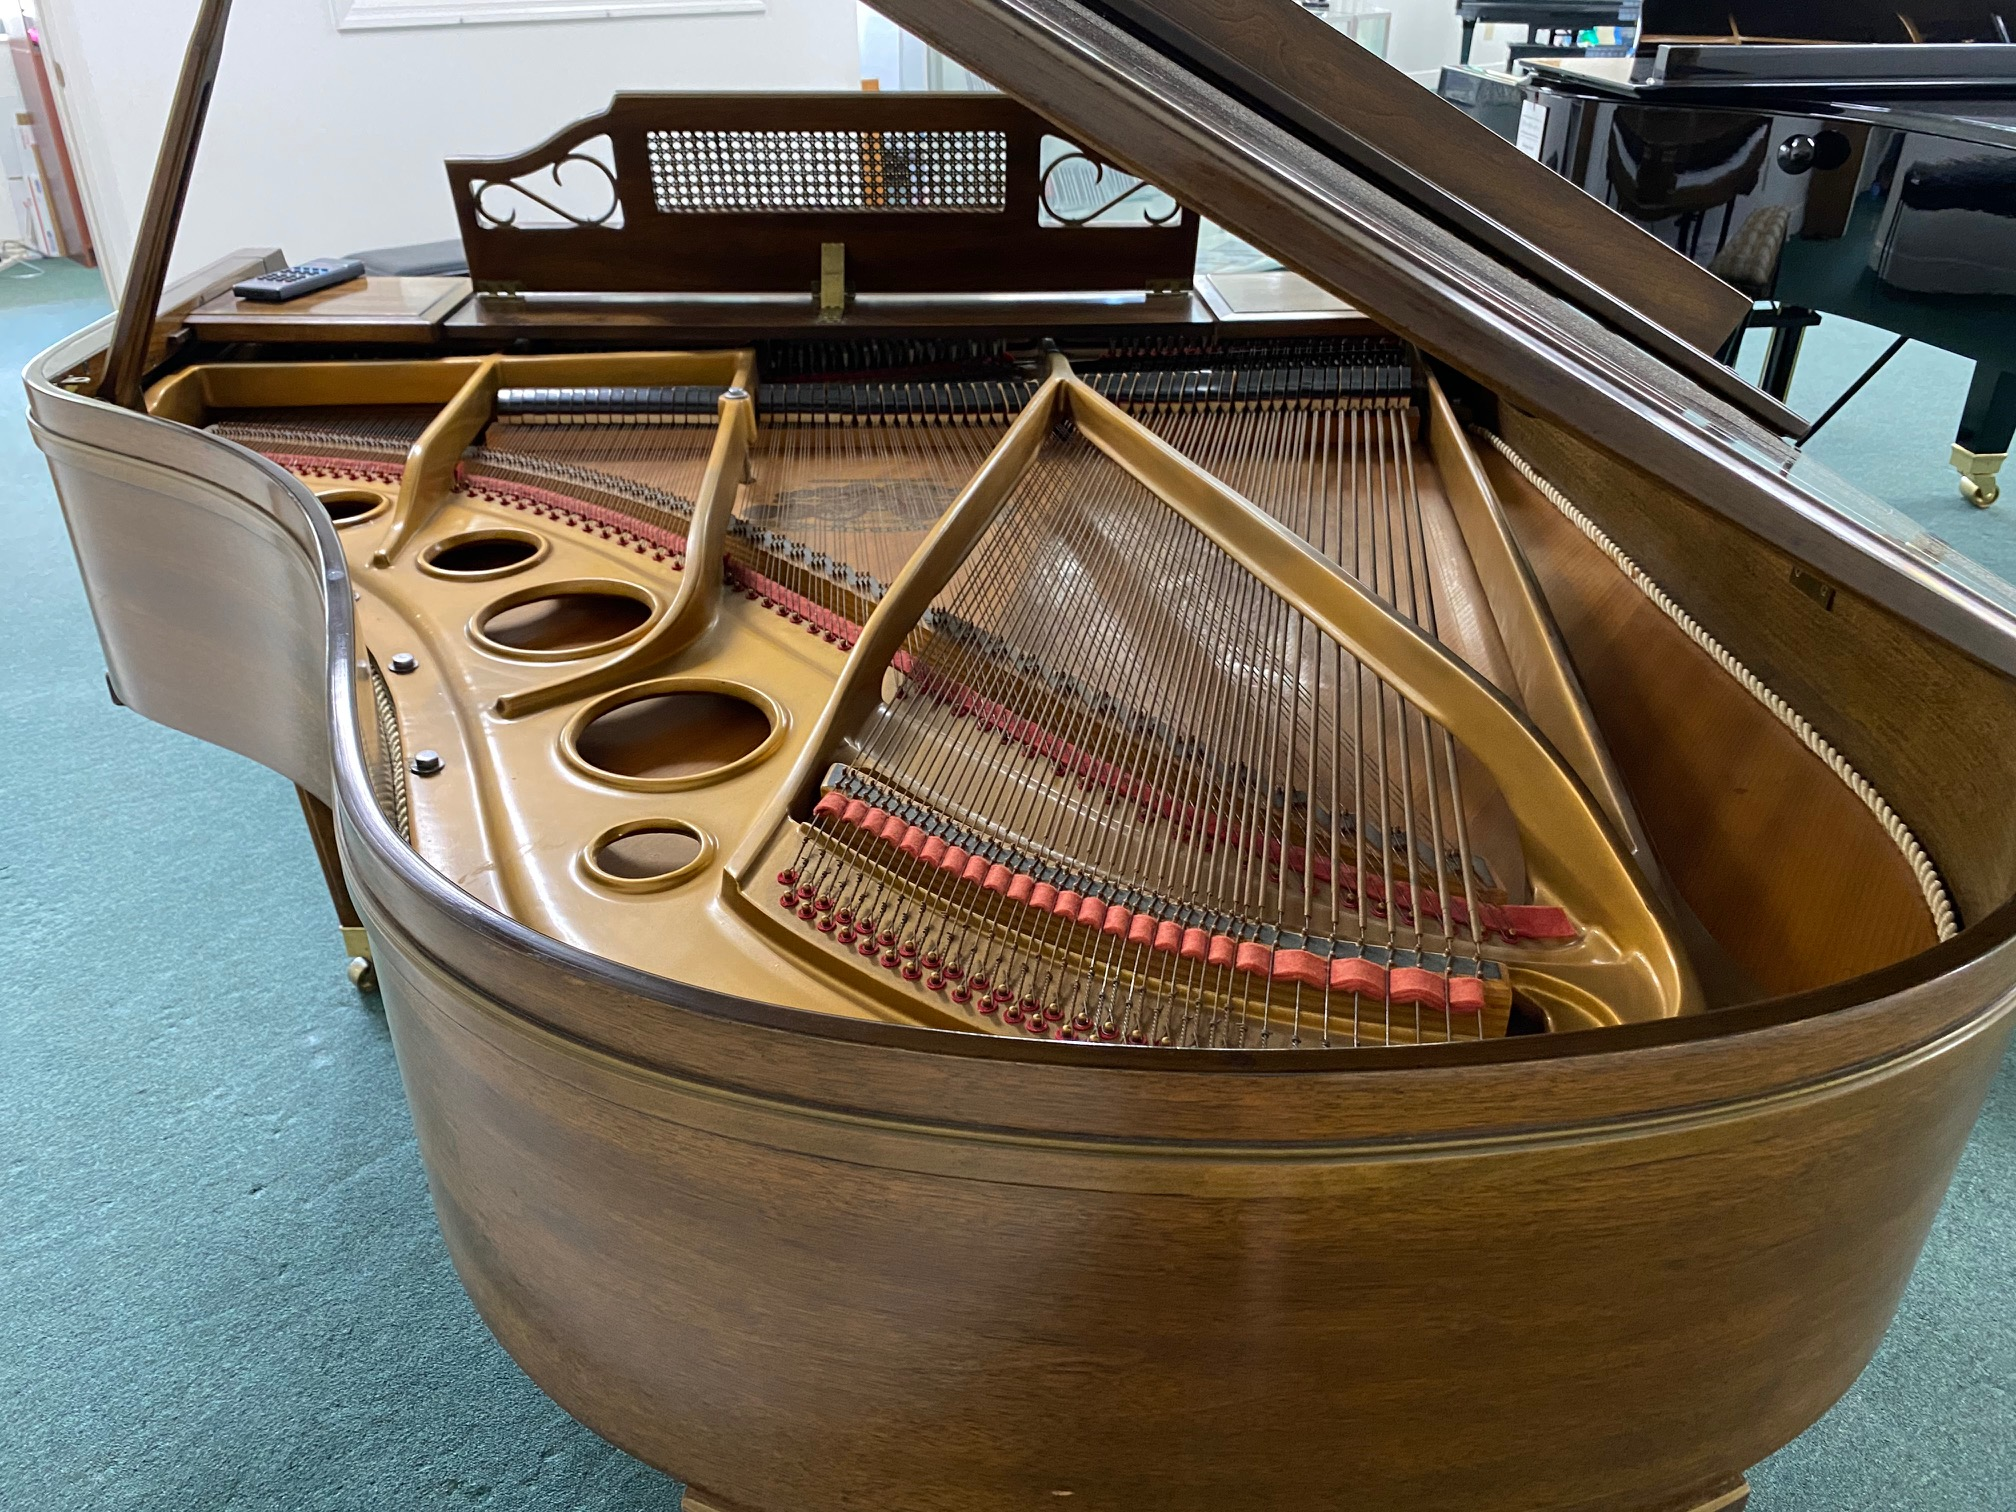 Kimball Player Grand Piano